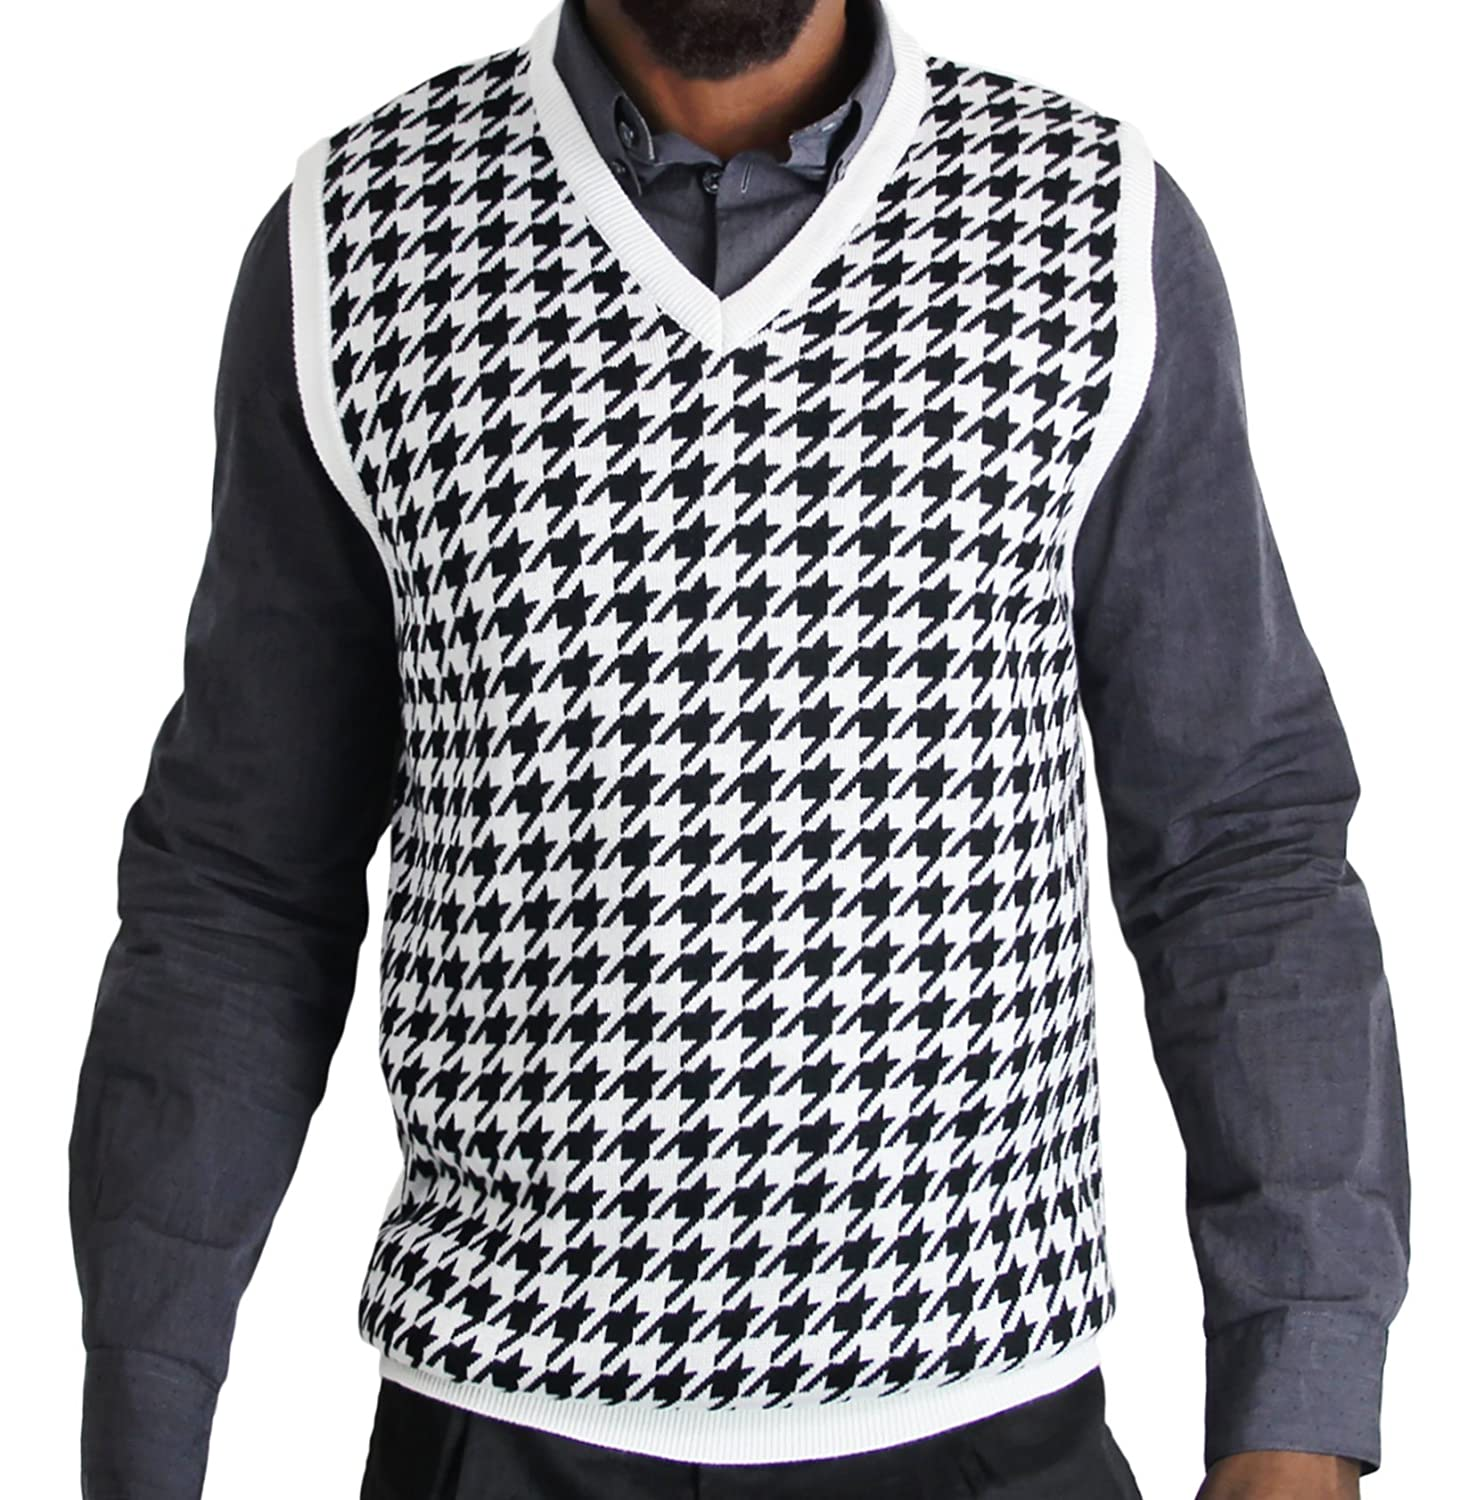 Blue Ocean Jacquard Houndstooth Sweater Vest at Amazon Men's ...